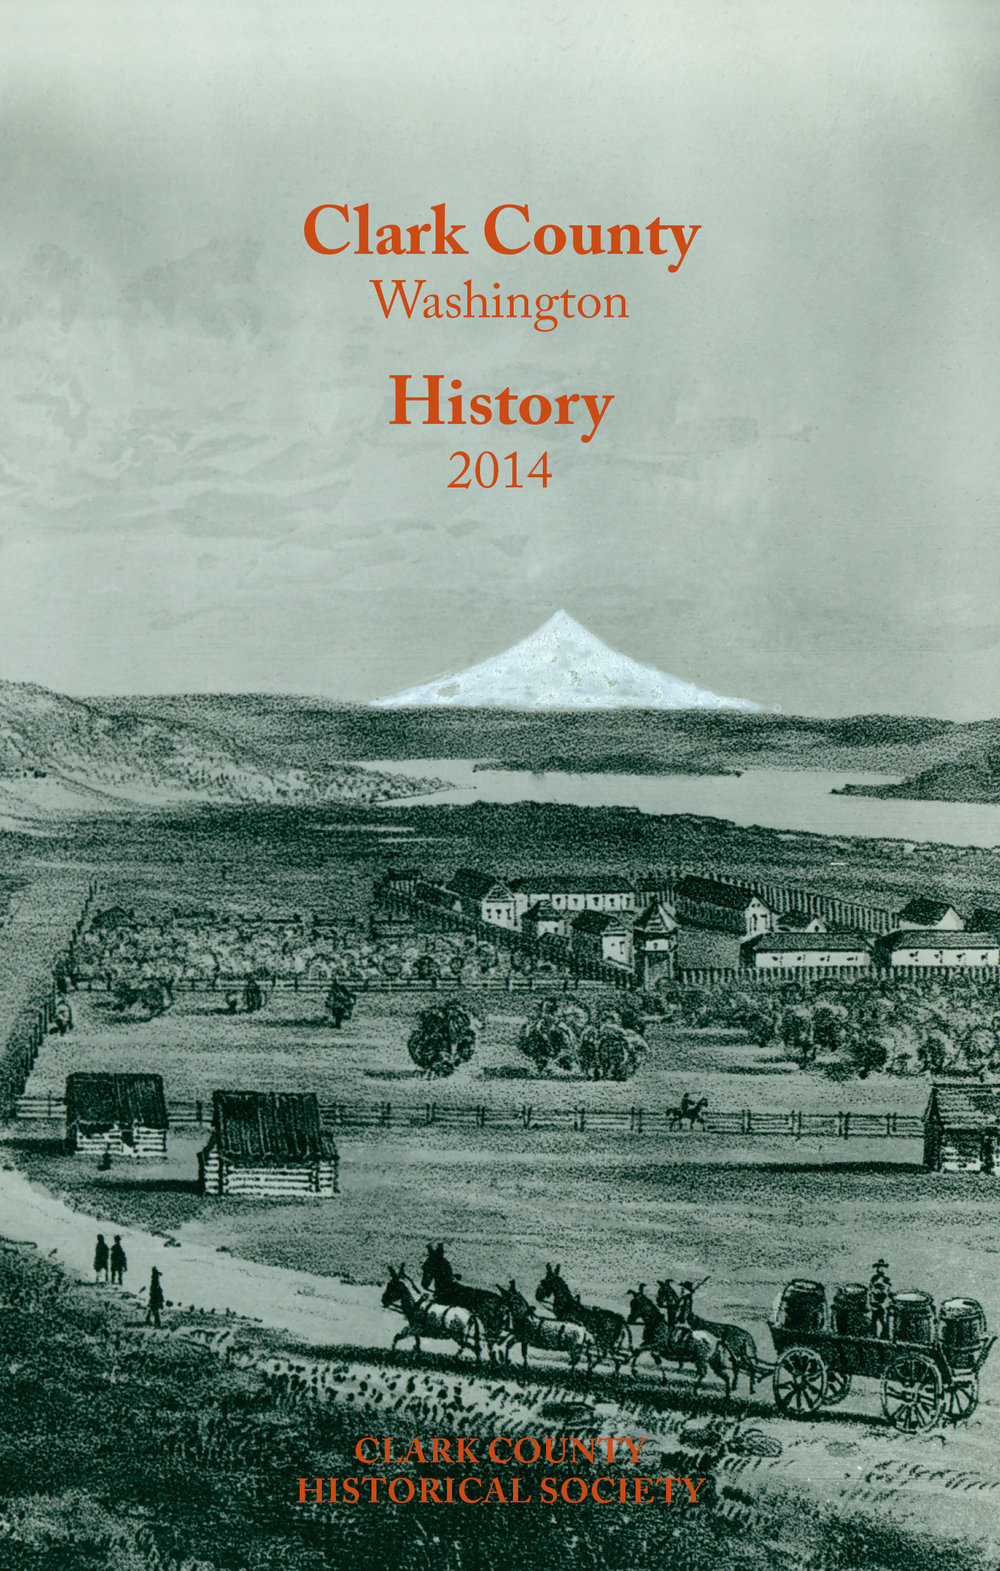 Clark County Washington History (2014)